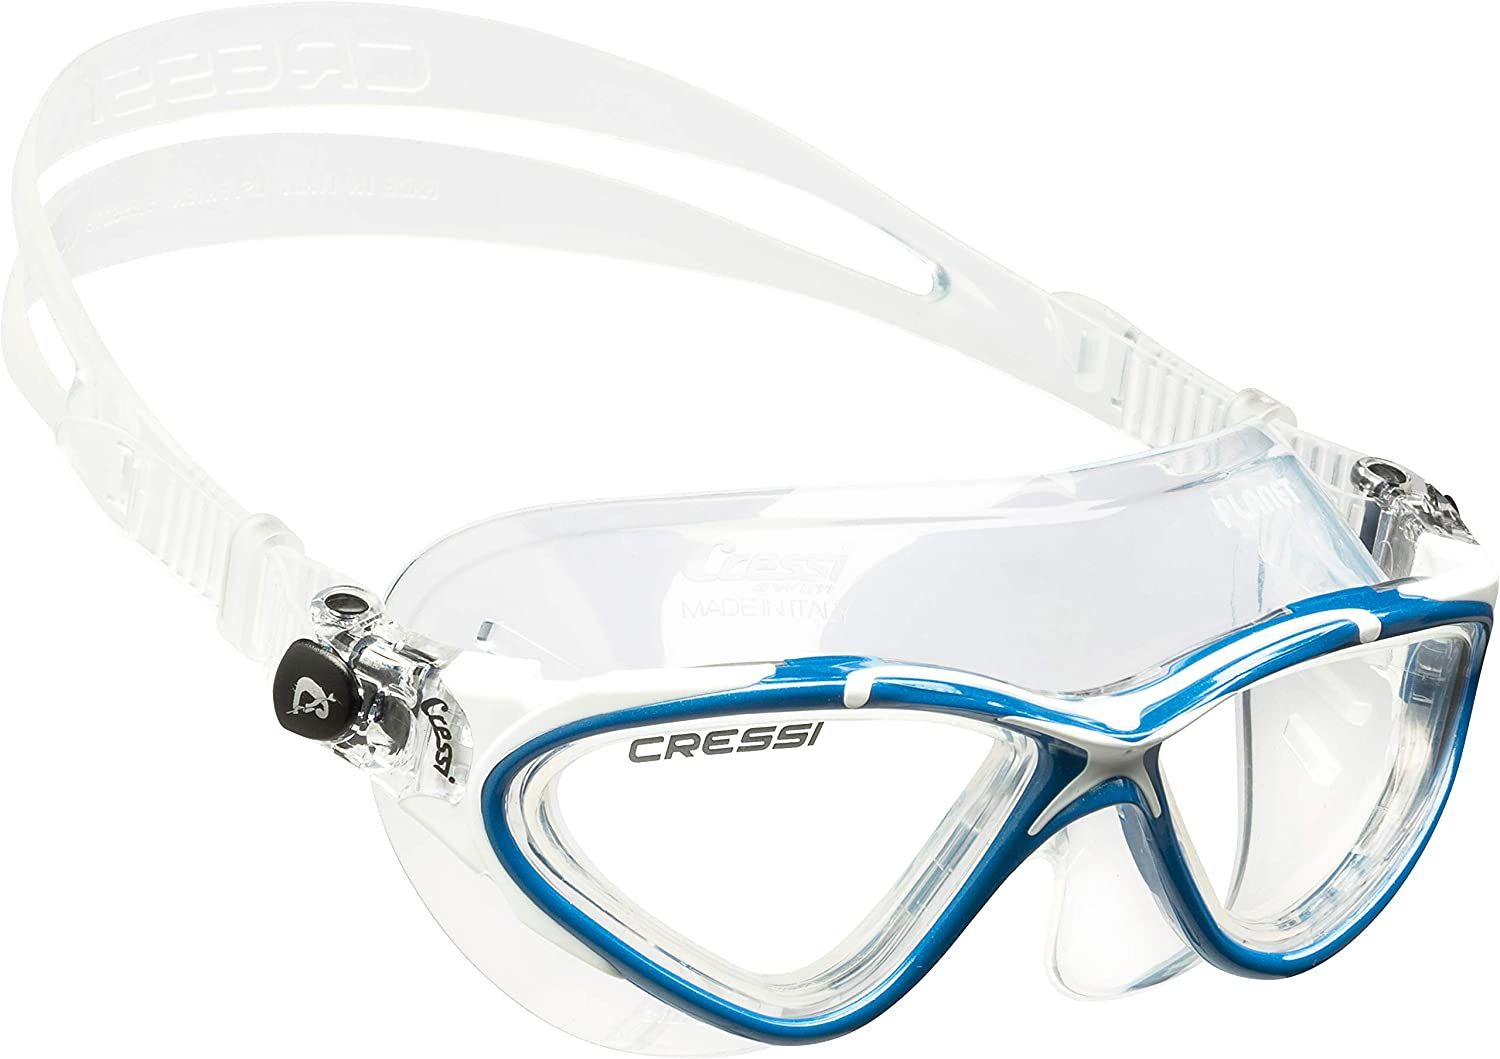 Cressi Adult Swim Goggles with Max 64% OFF Lasting Anti-Fog Courier shipping free shipping Long Technology